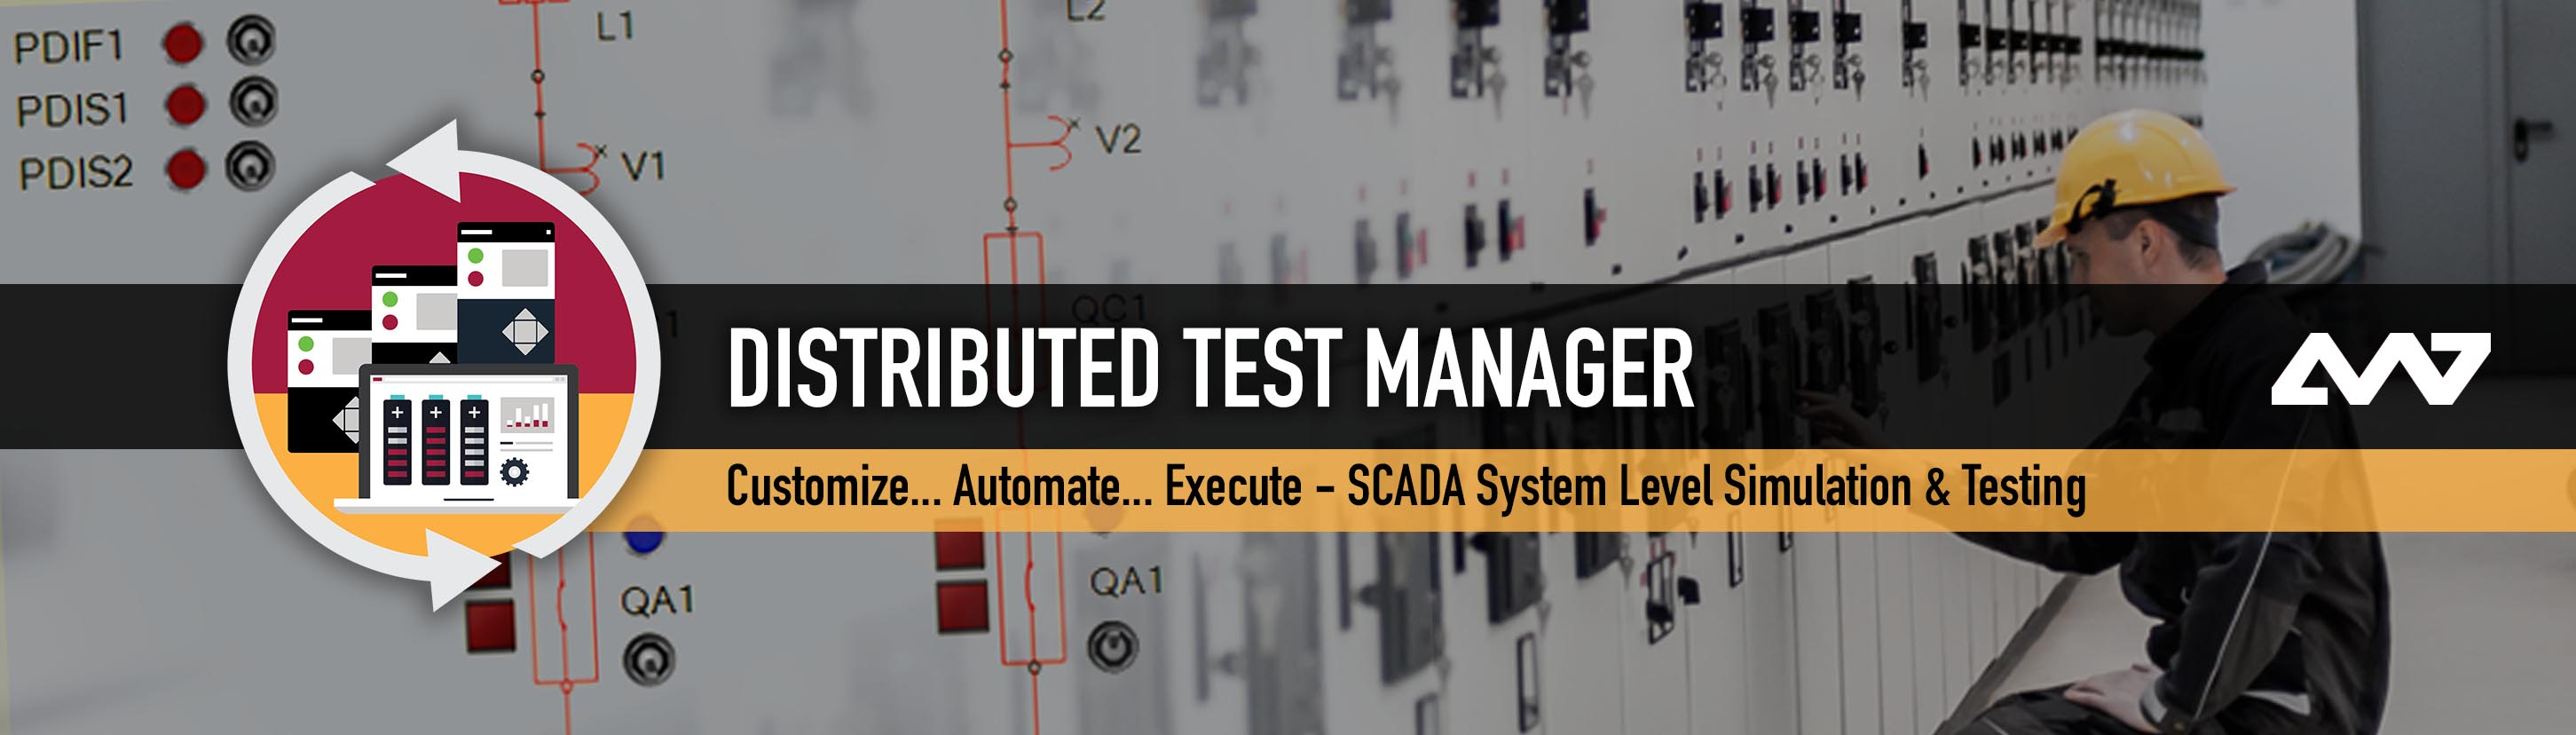 Distributed Test Manager (DTM)